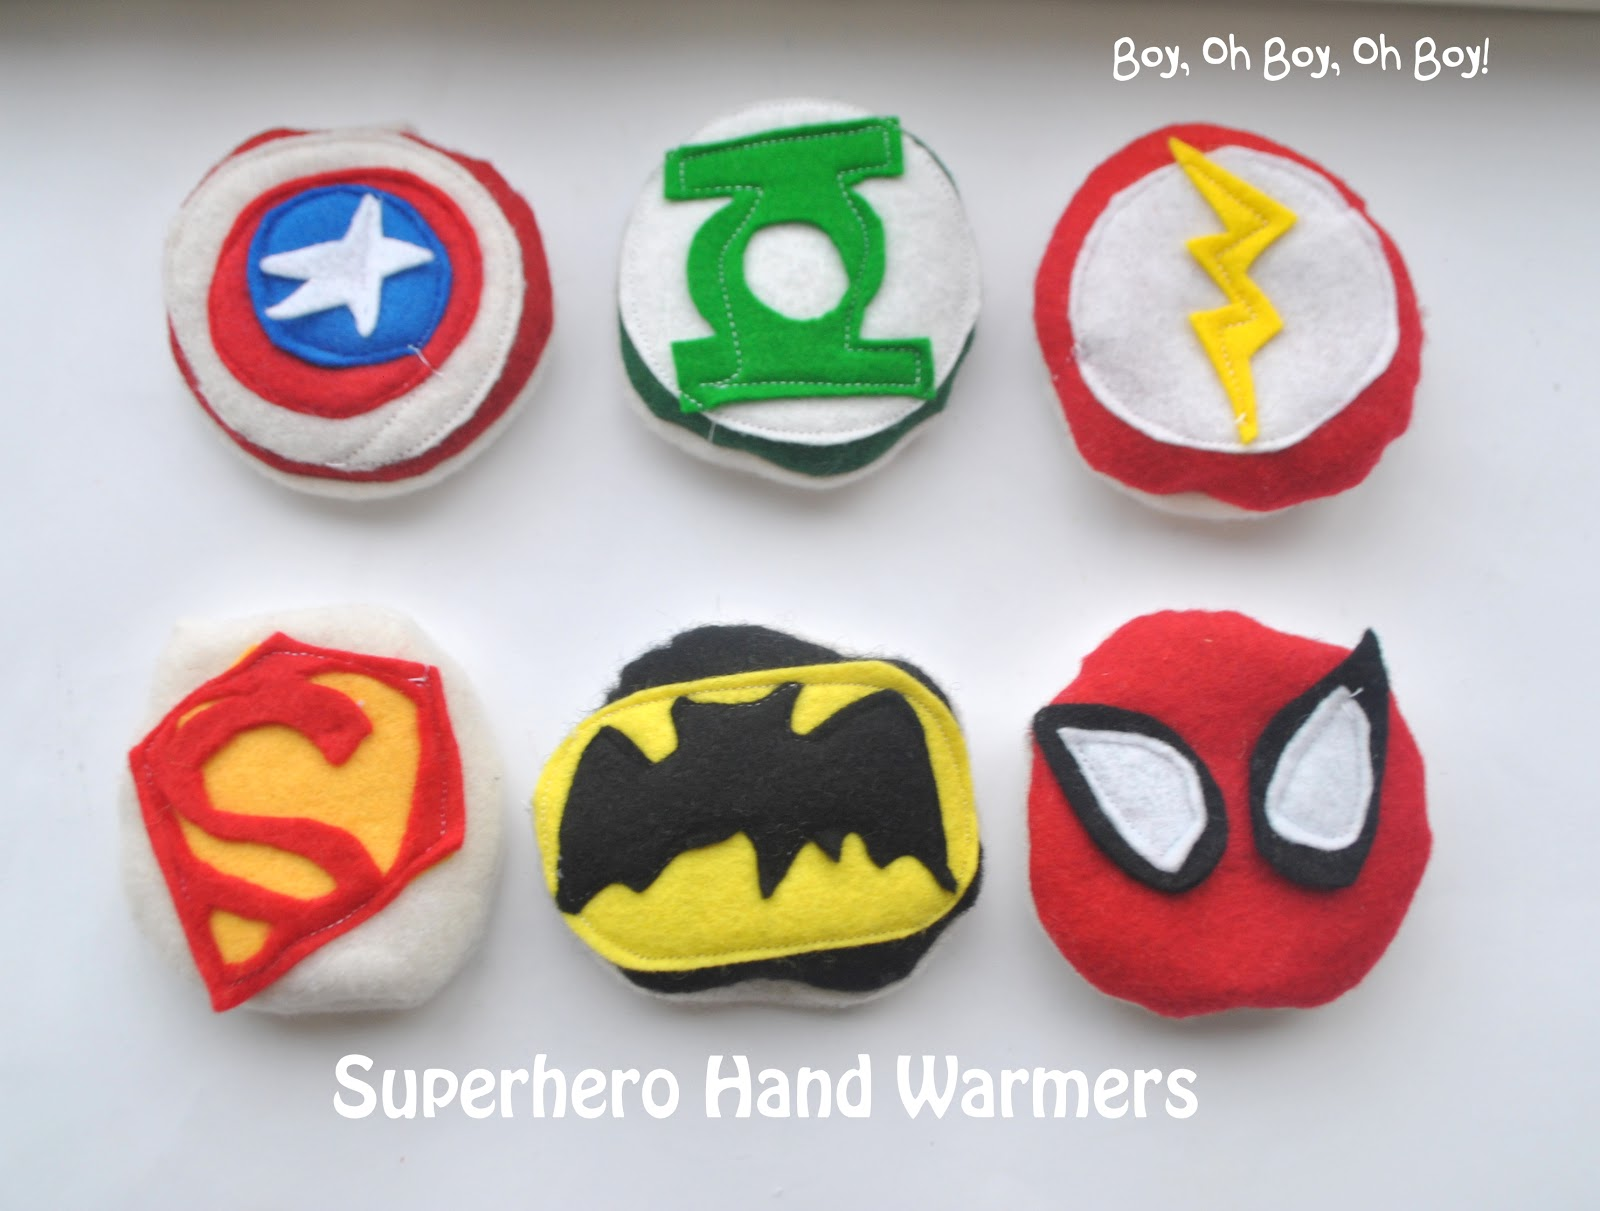 Superhero Hand Warmers